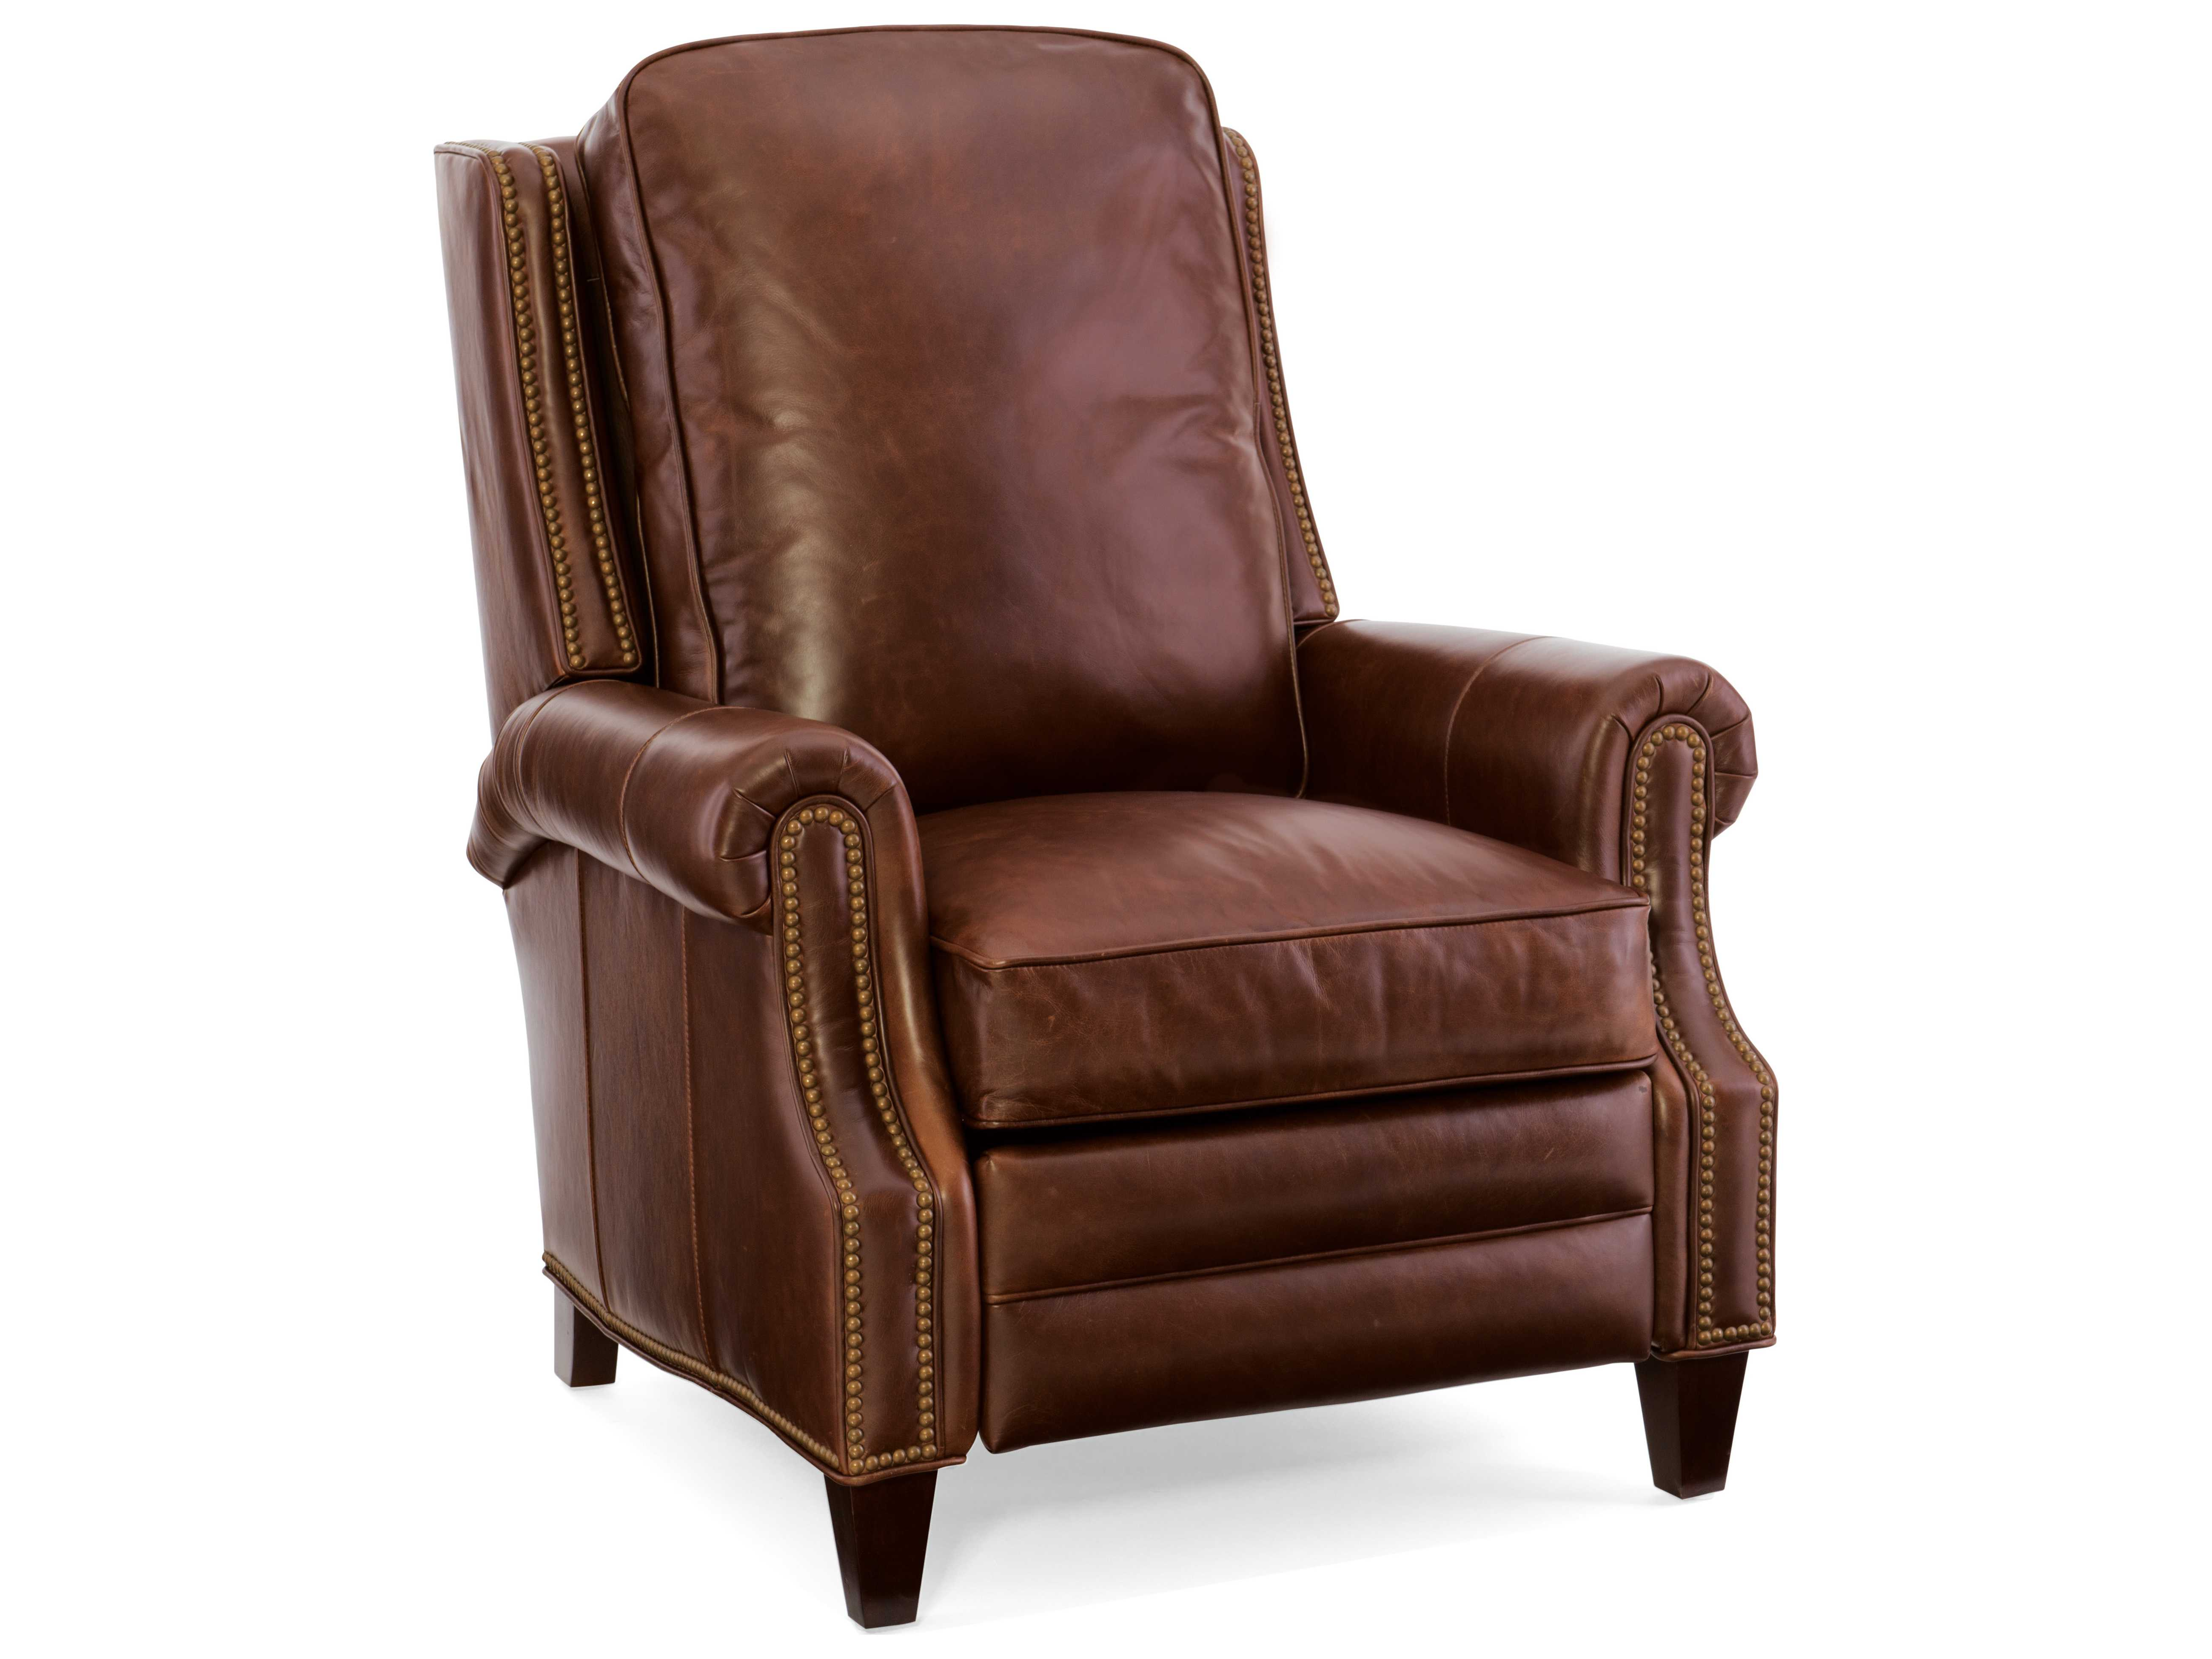 Bradington Young Aaron Recliner Chair Married Cover  : BRD3721QSzm from www.luxedecor.com size 5200 x 3901 jpeg 451kB